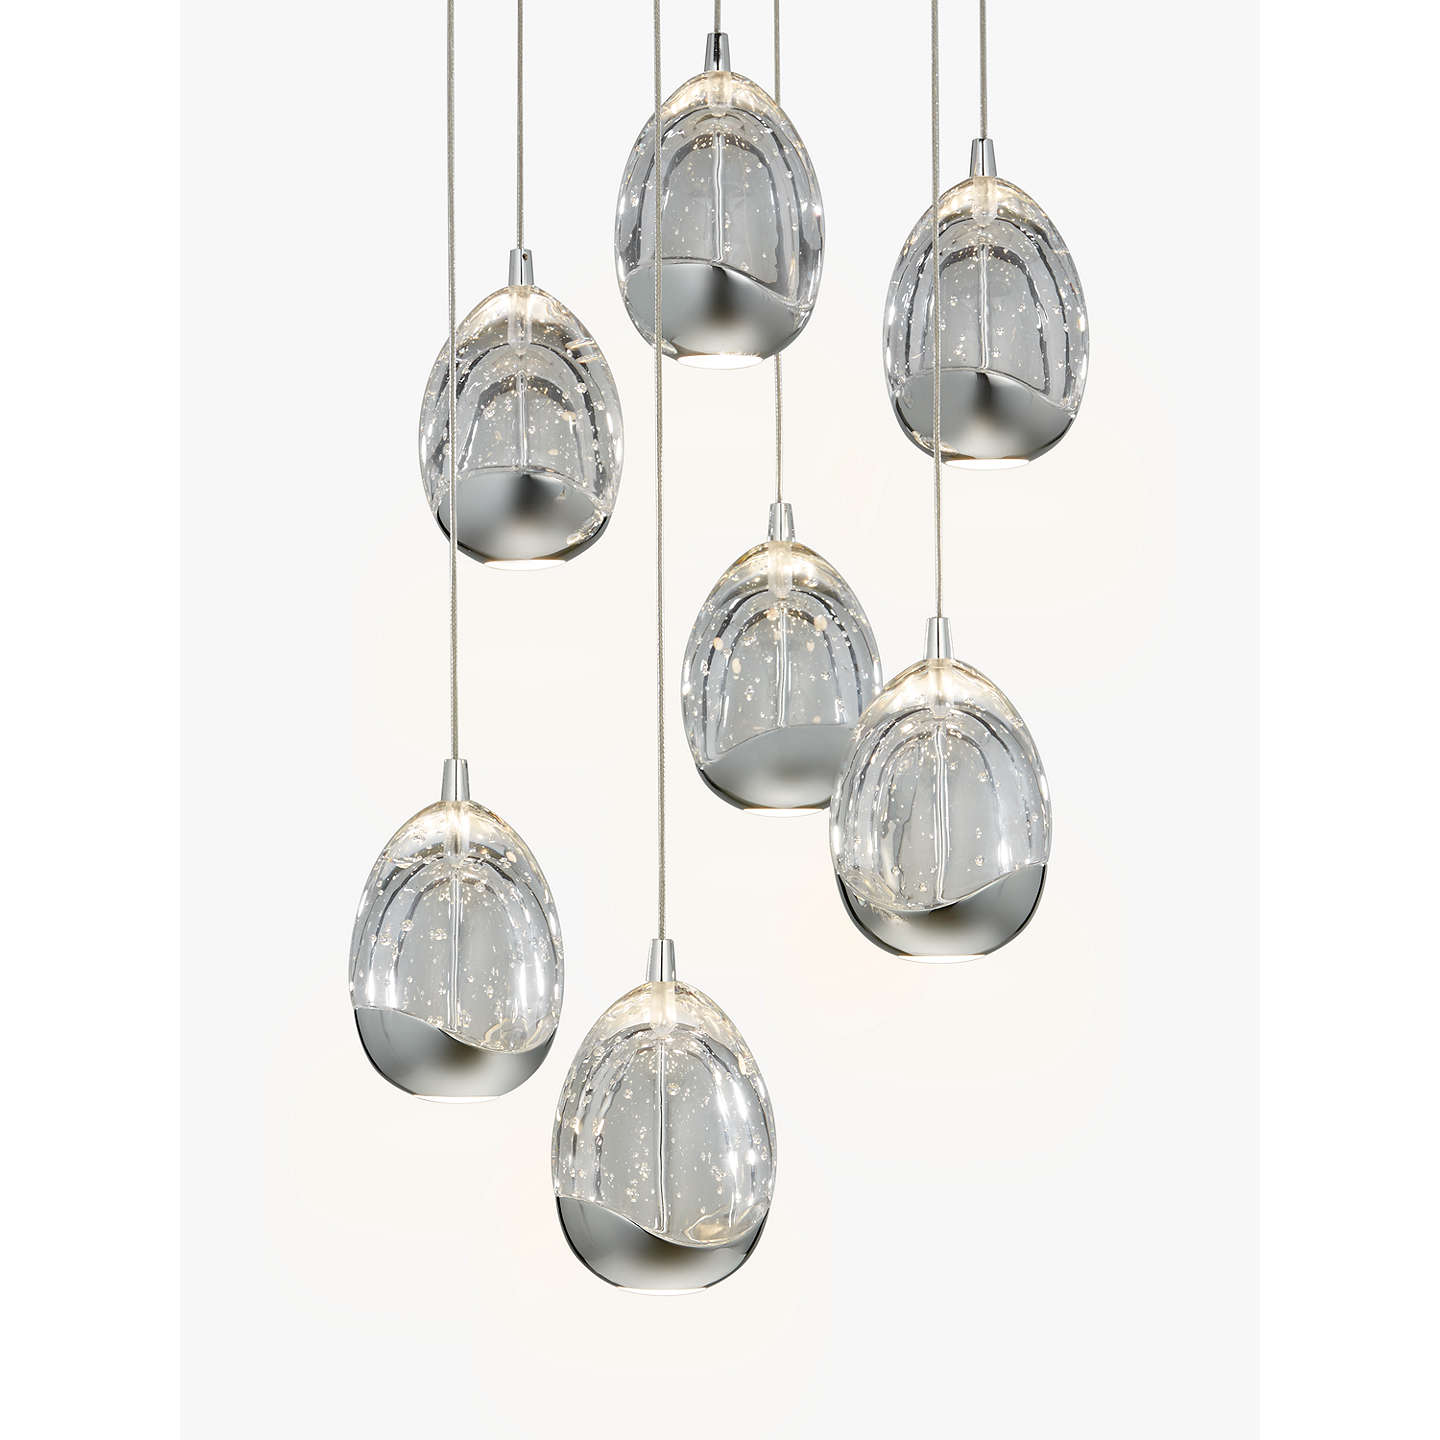 John lewis droplet led pendant ceiling light 7 light chrome at buyjohn lewis droplet led pendant ceiling light 7 light chrome online at johnlewis mozeypictures